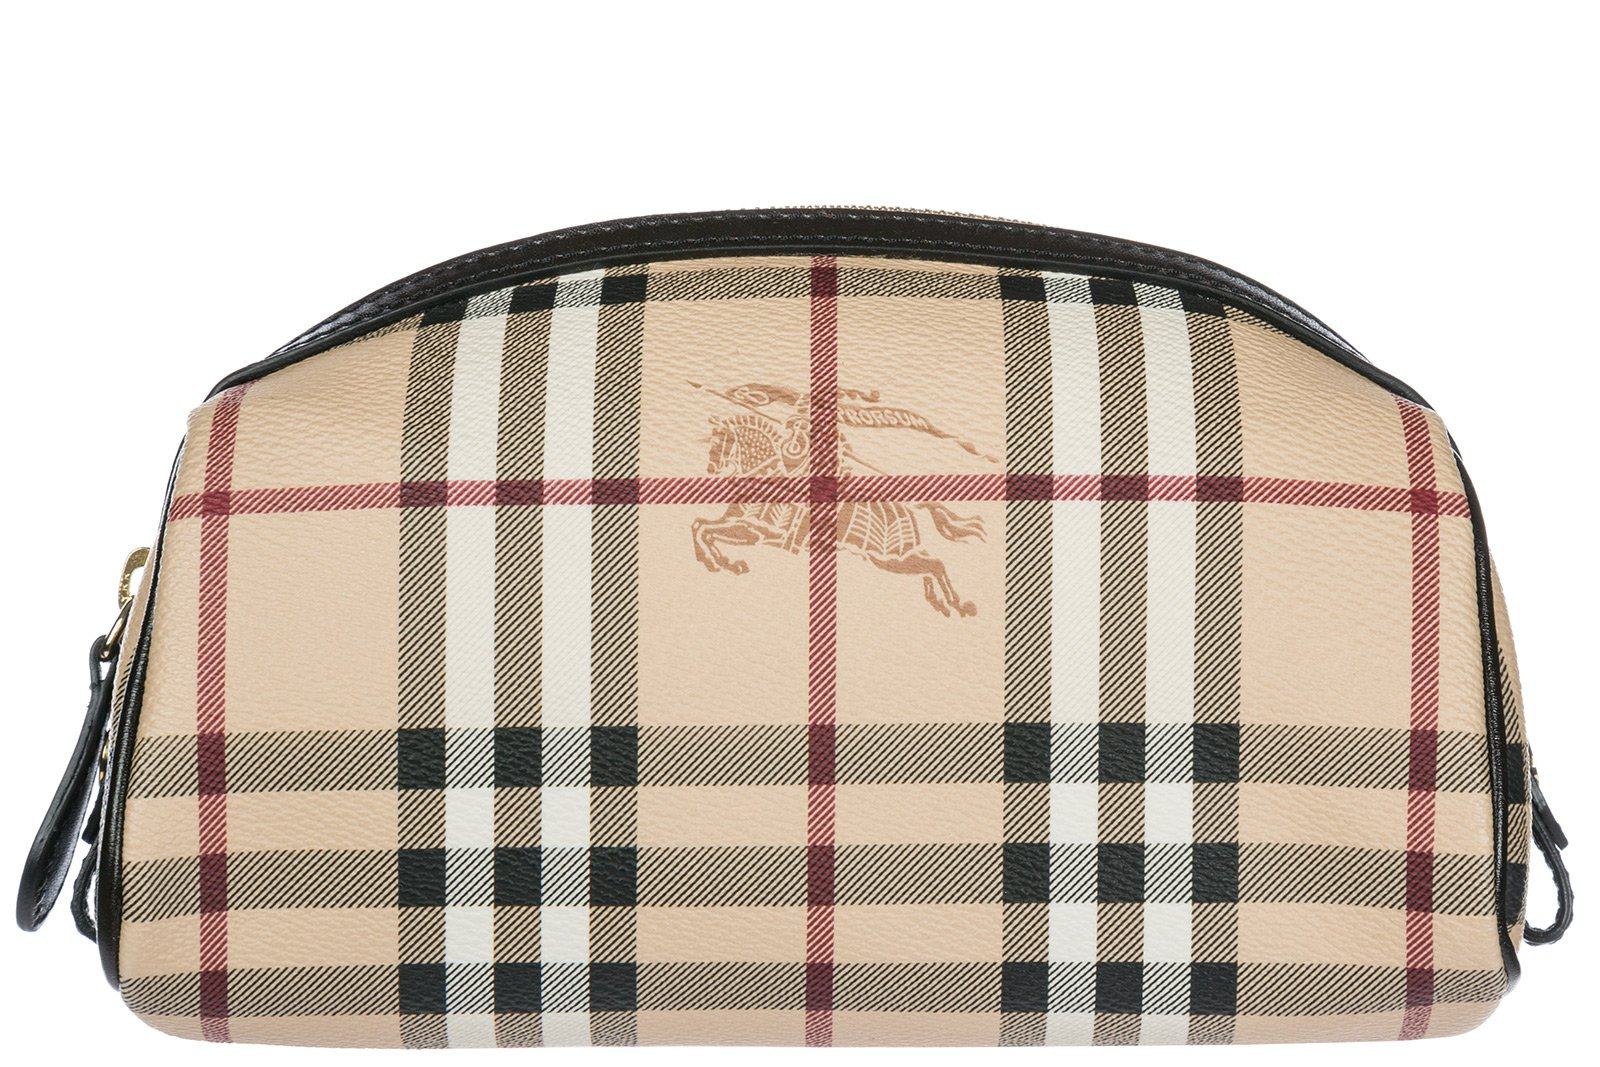 Burberry women's travel makeup beauty case Evelyn brown